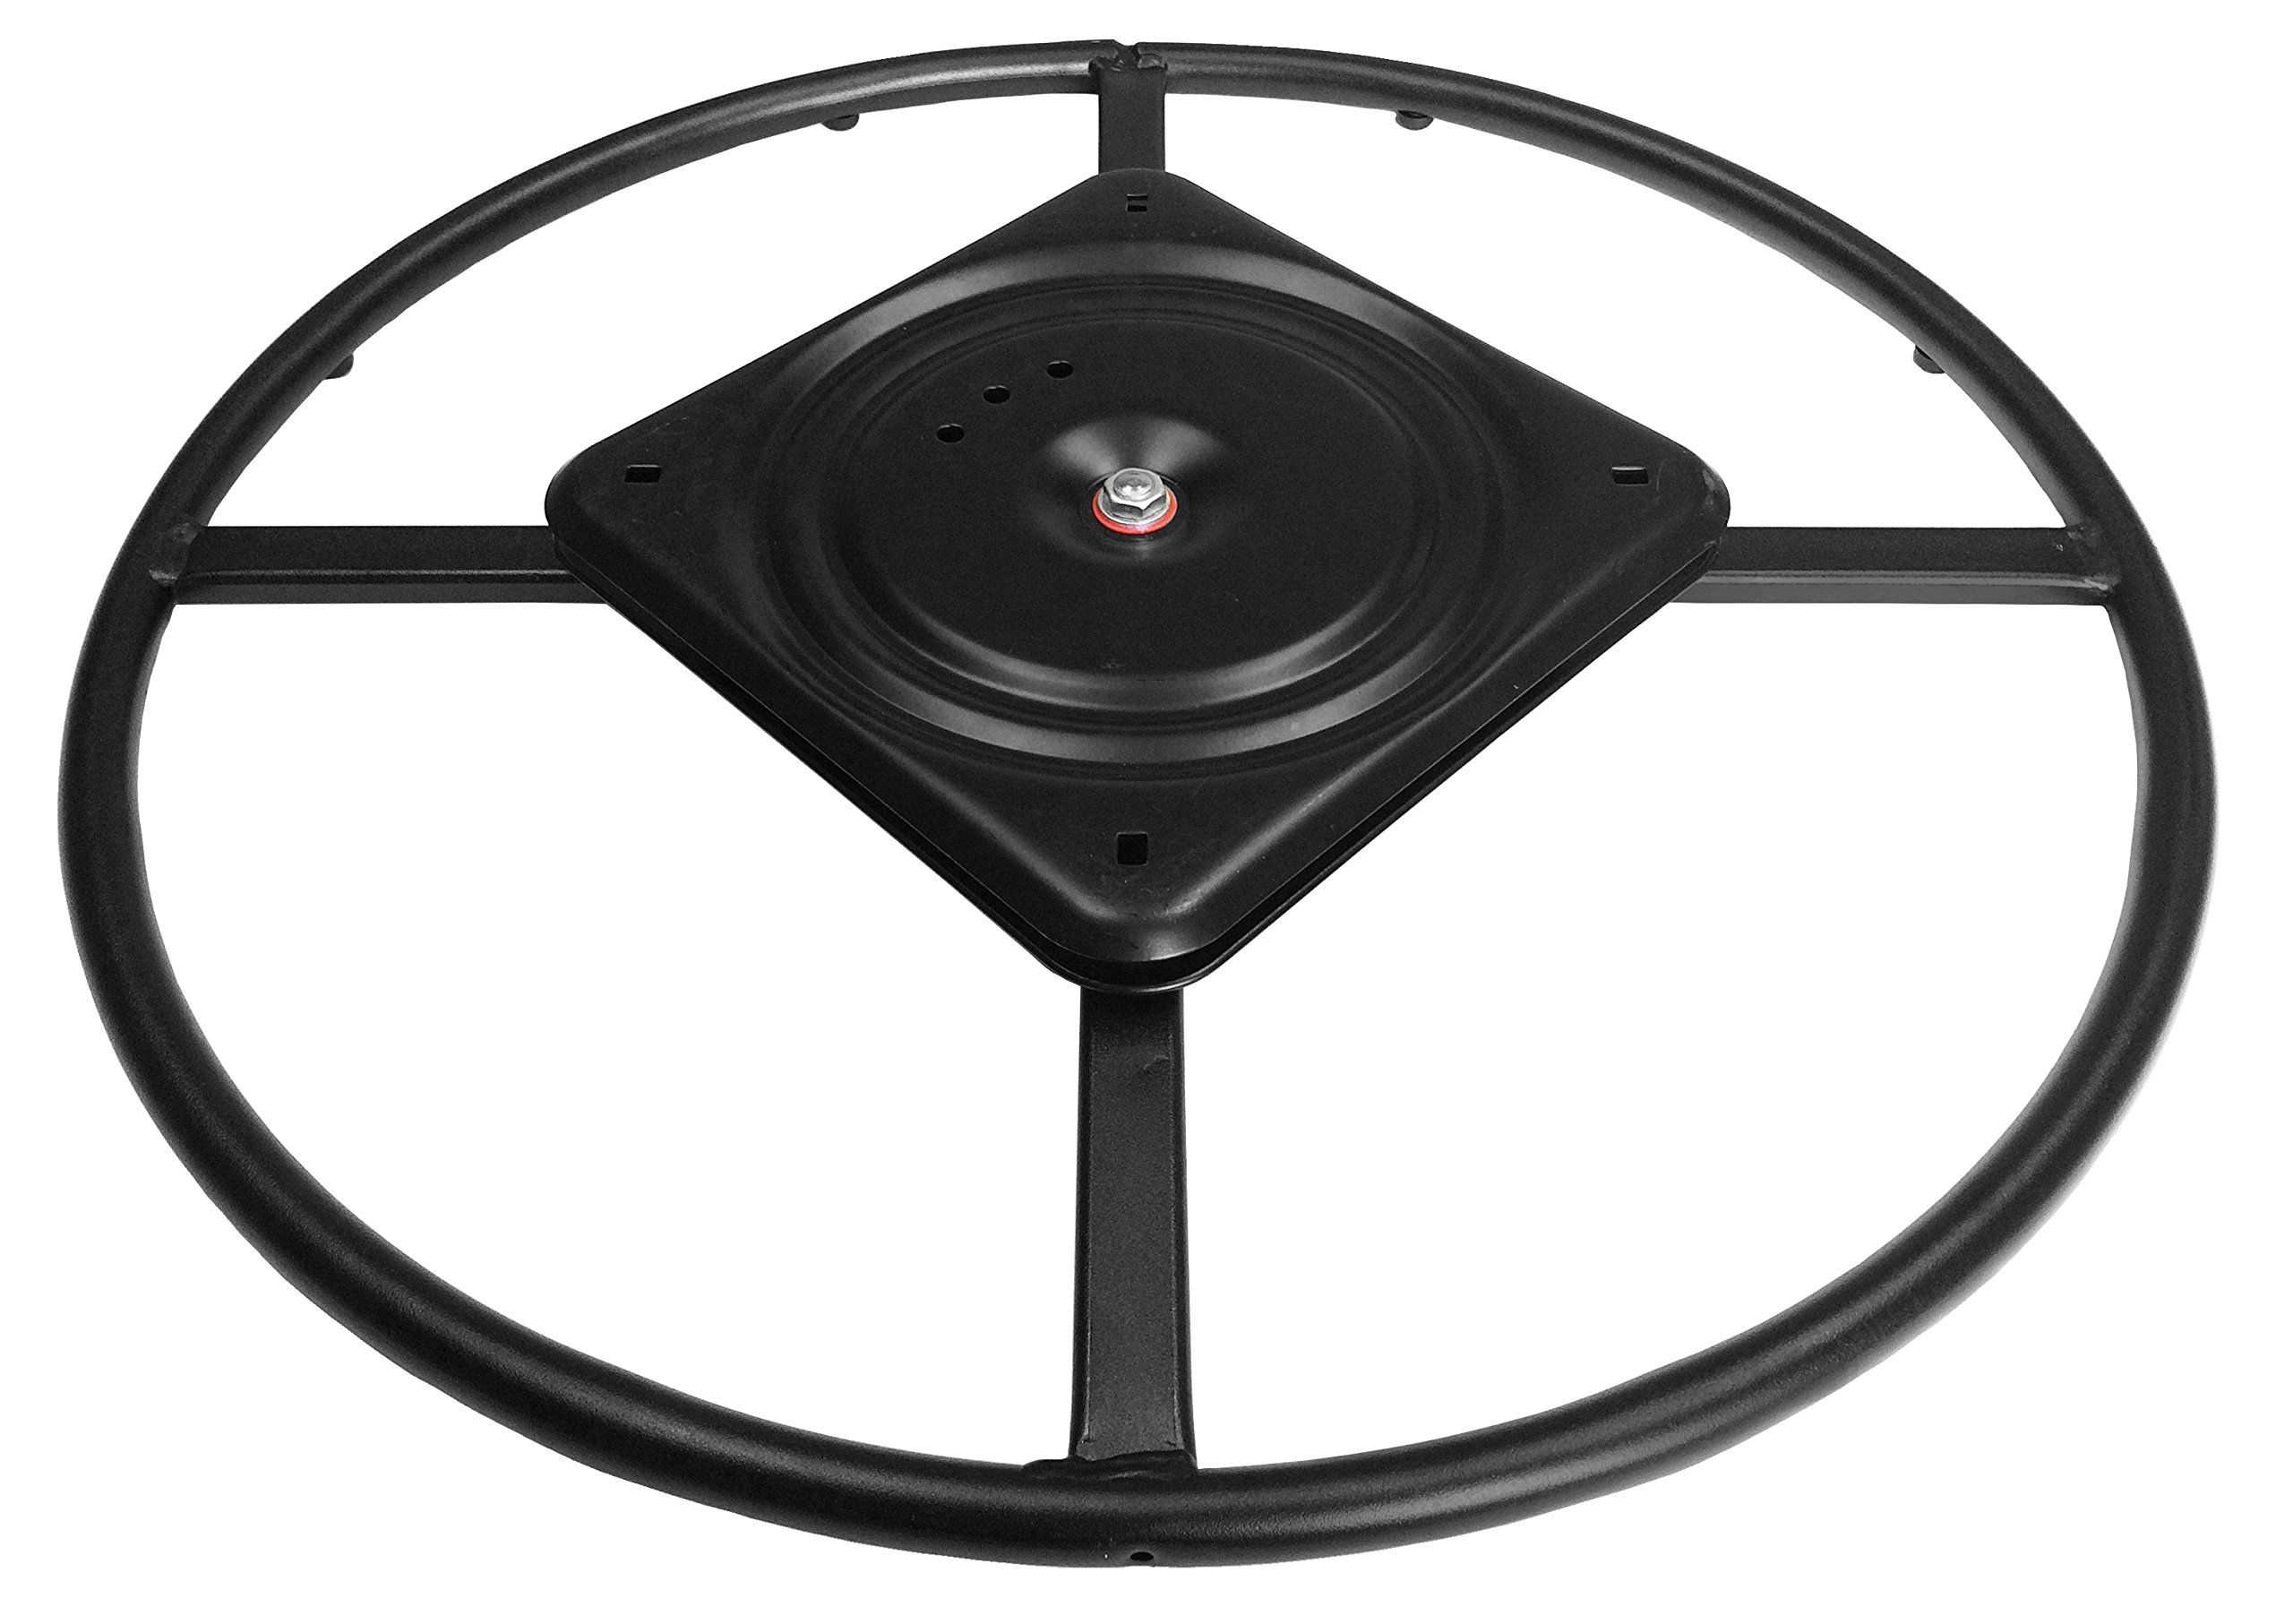 chairpartsonline 22'' Replacement Ring Base w/Swivel for Recliner Chairs & Furniture, Includes Swivel - S5469-A by chairpartsonline